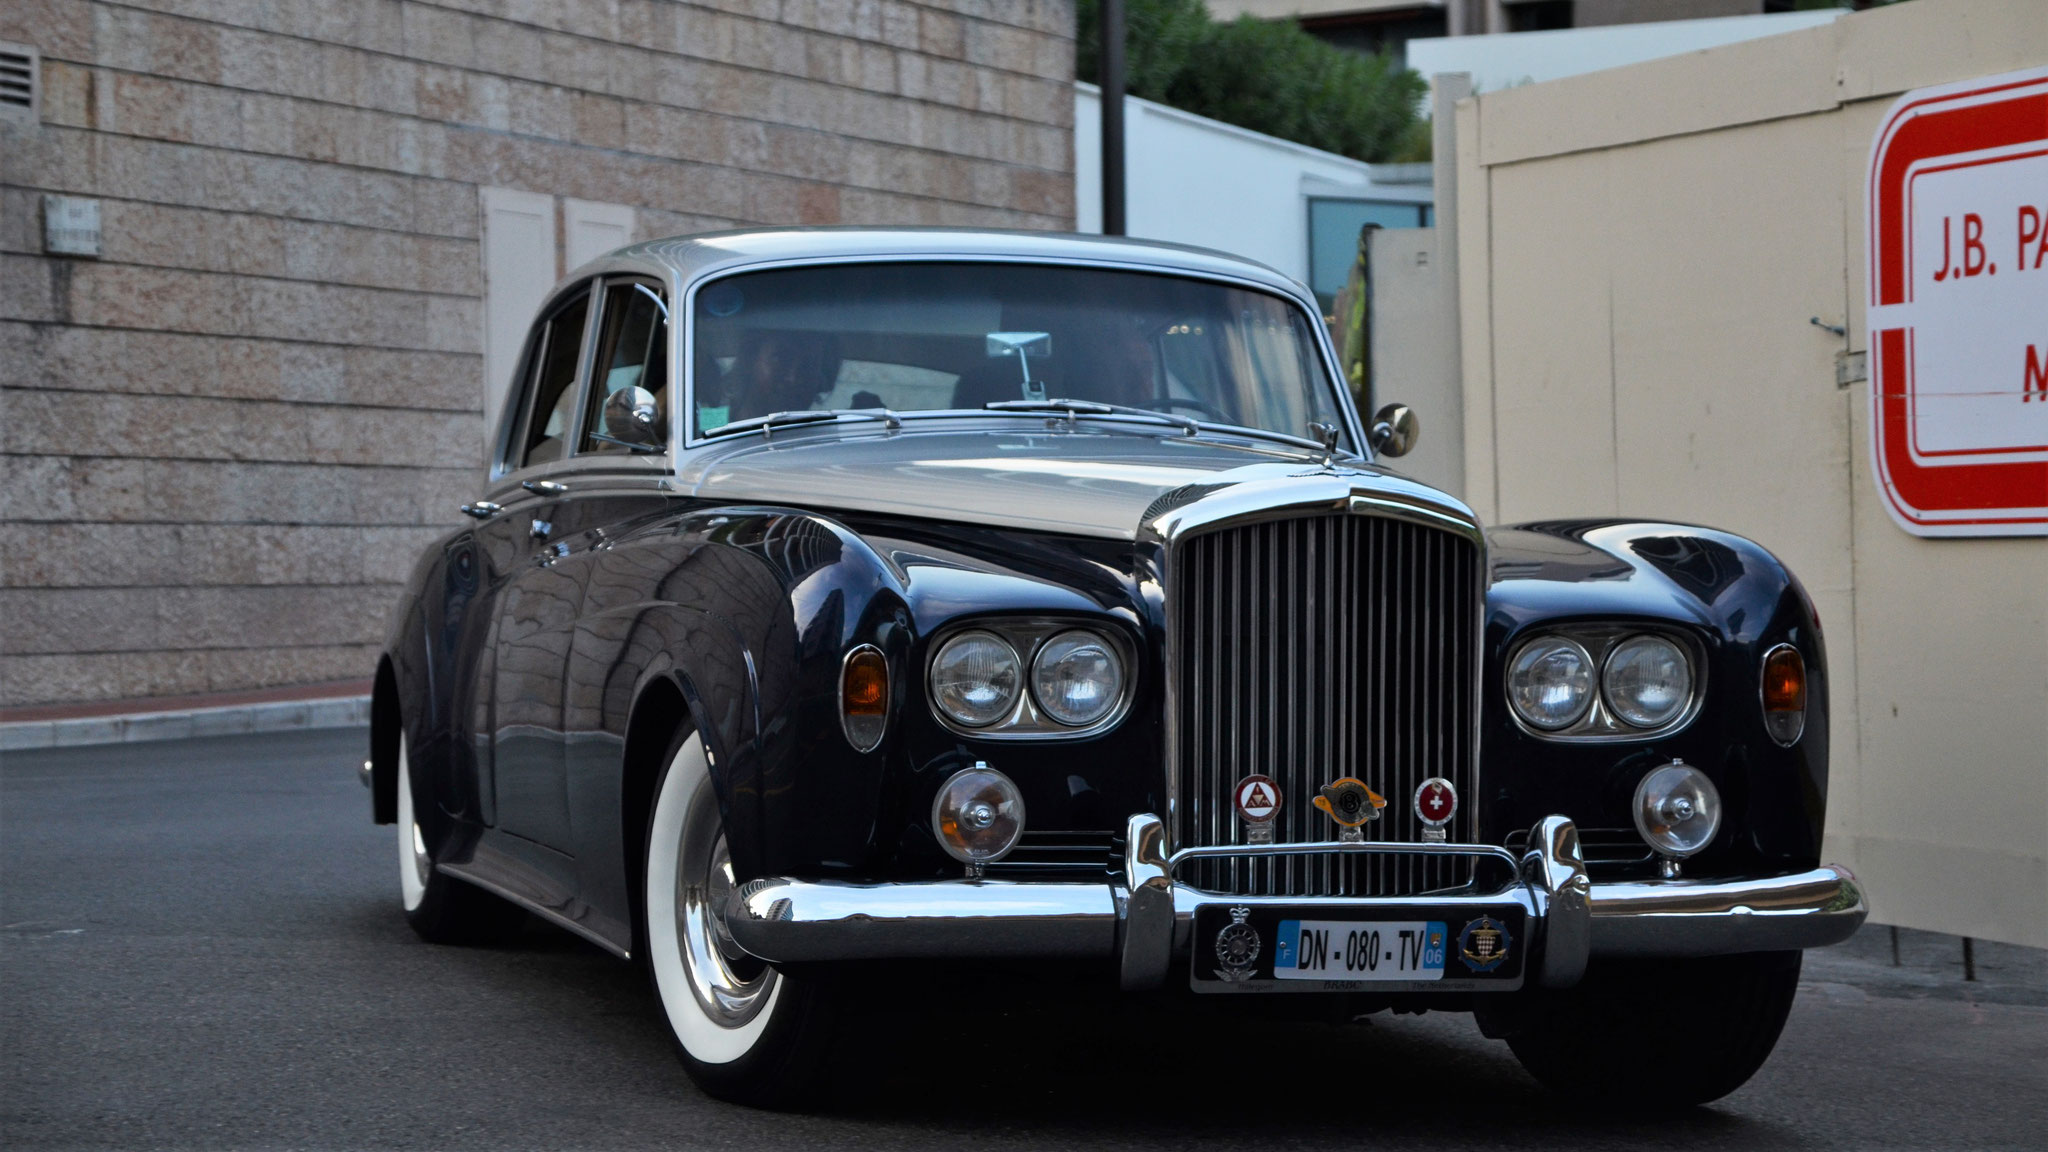 Bentley S3 Continental - DN-080-TV-06 (FRA)